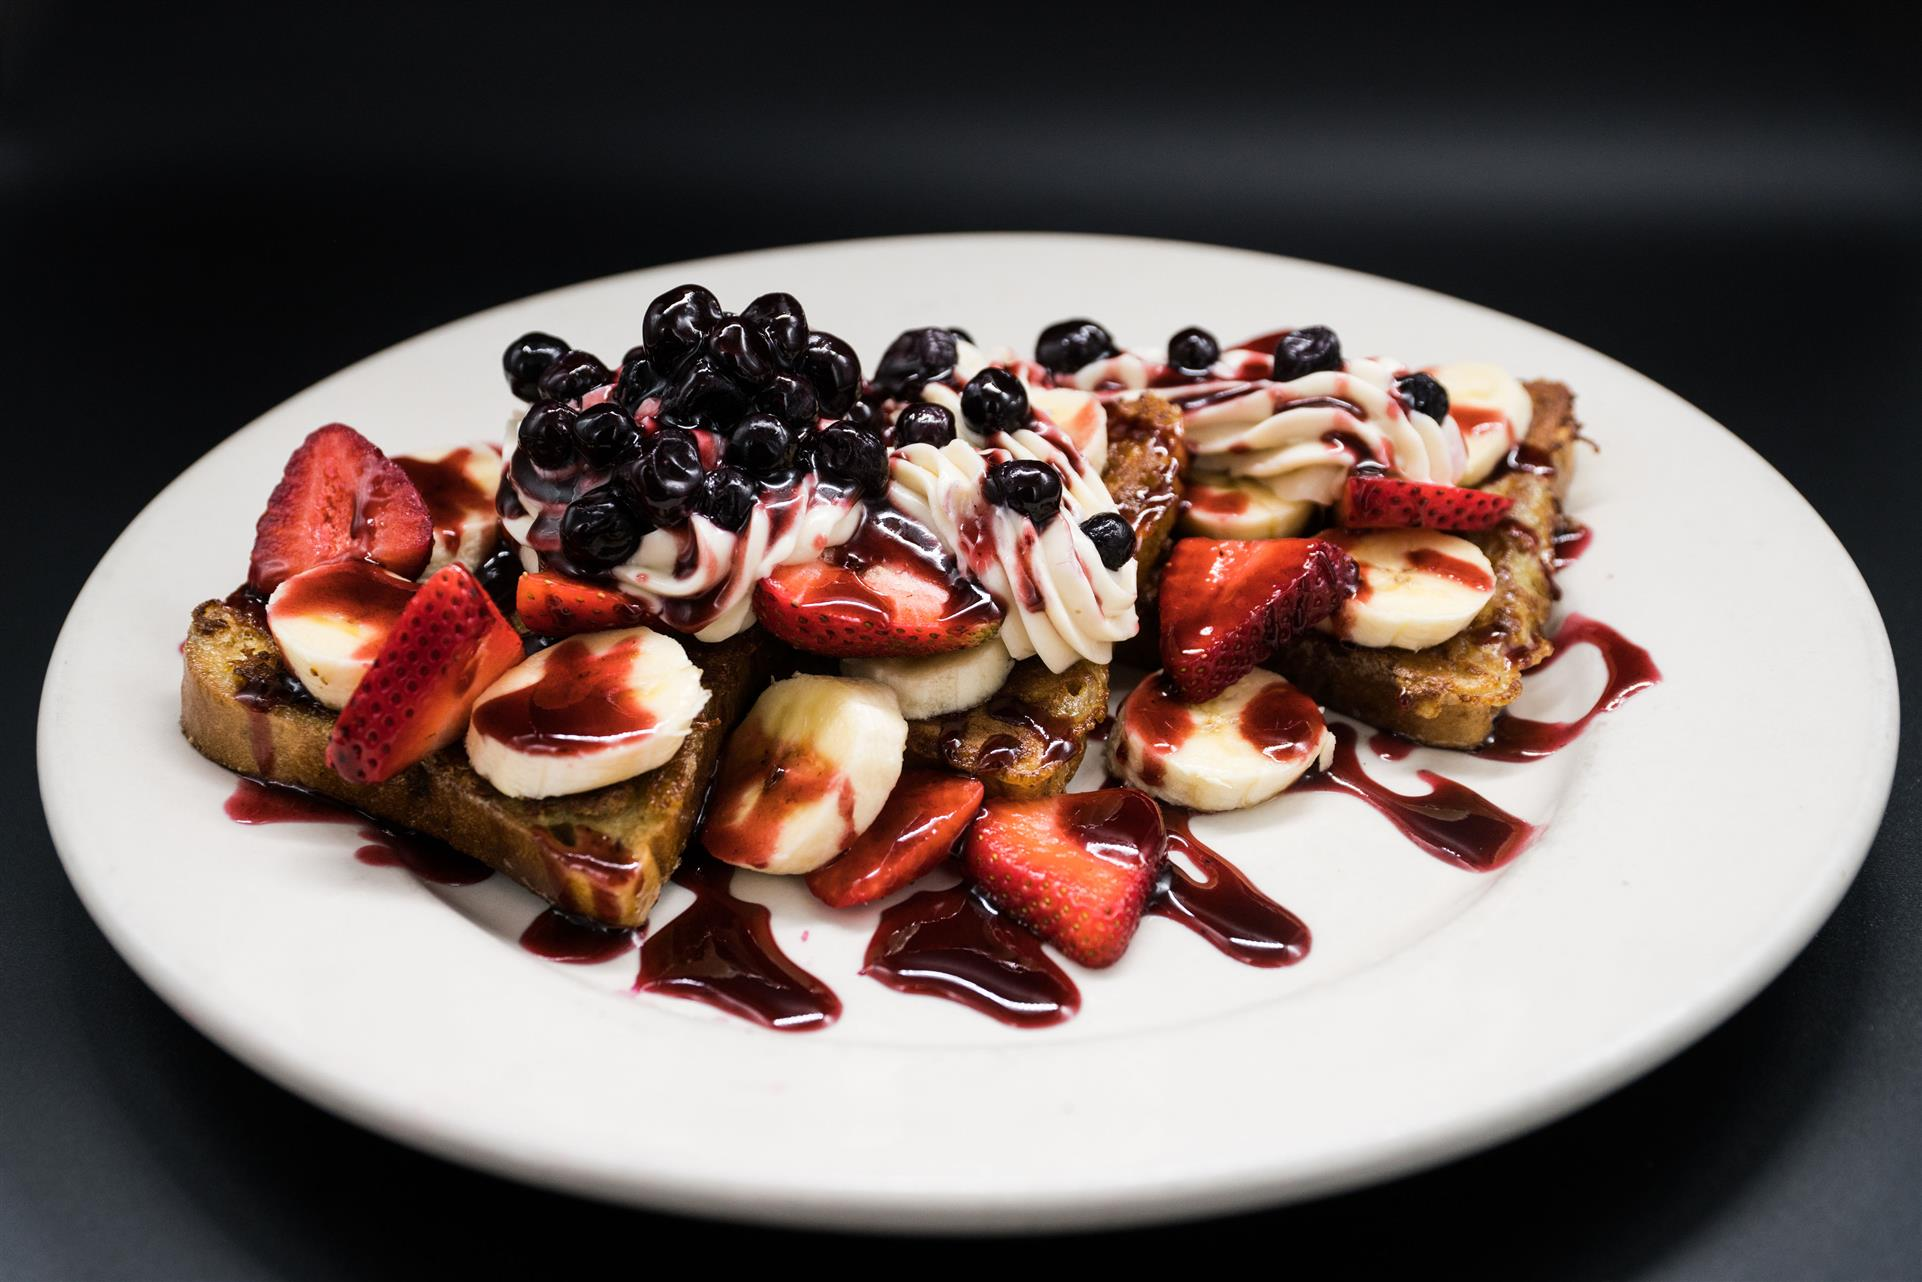 gluten free Very Berry French Toast. Stuffed with fresh sliced bananas and cream cheese frosting, topped with fresh berries and berry compote